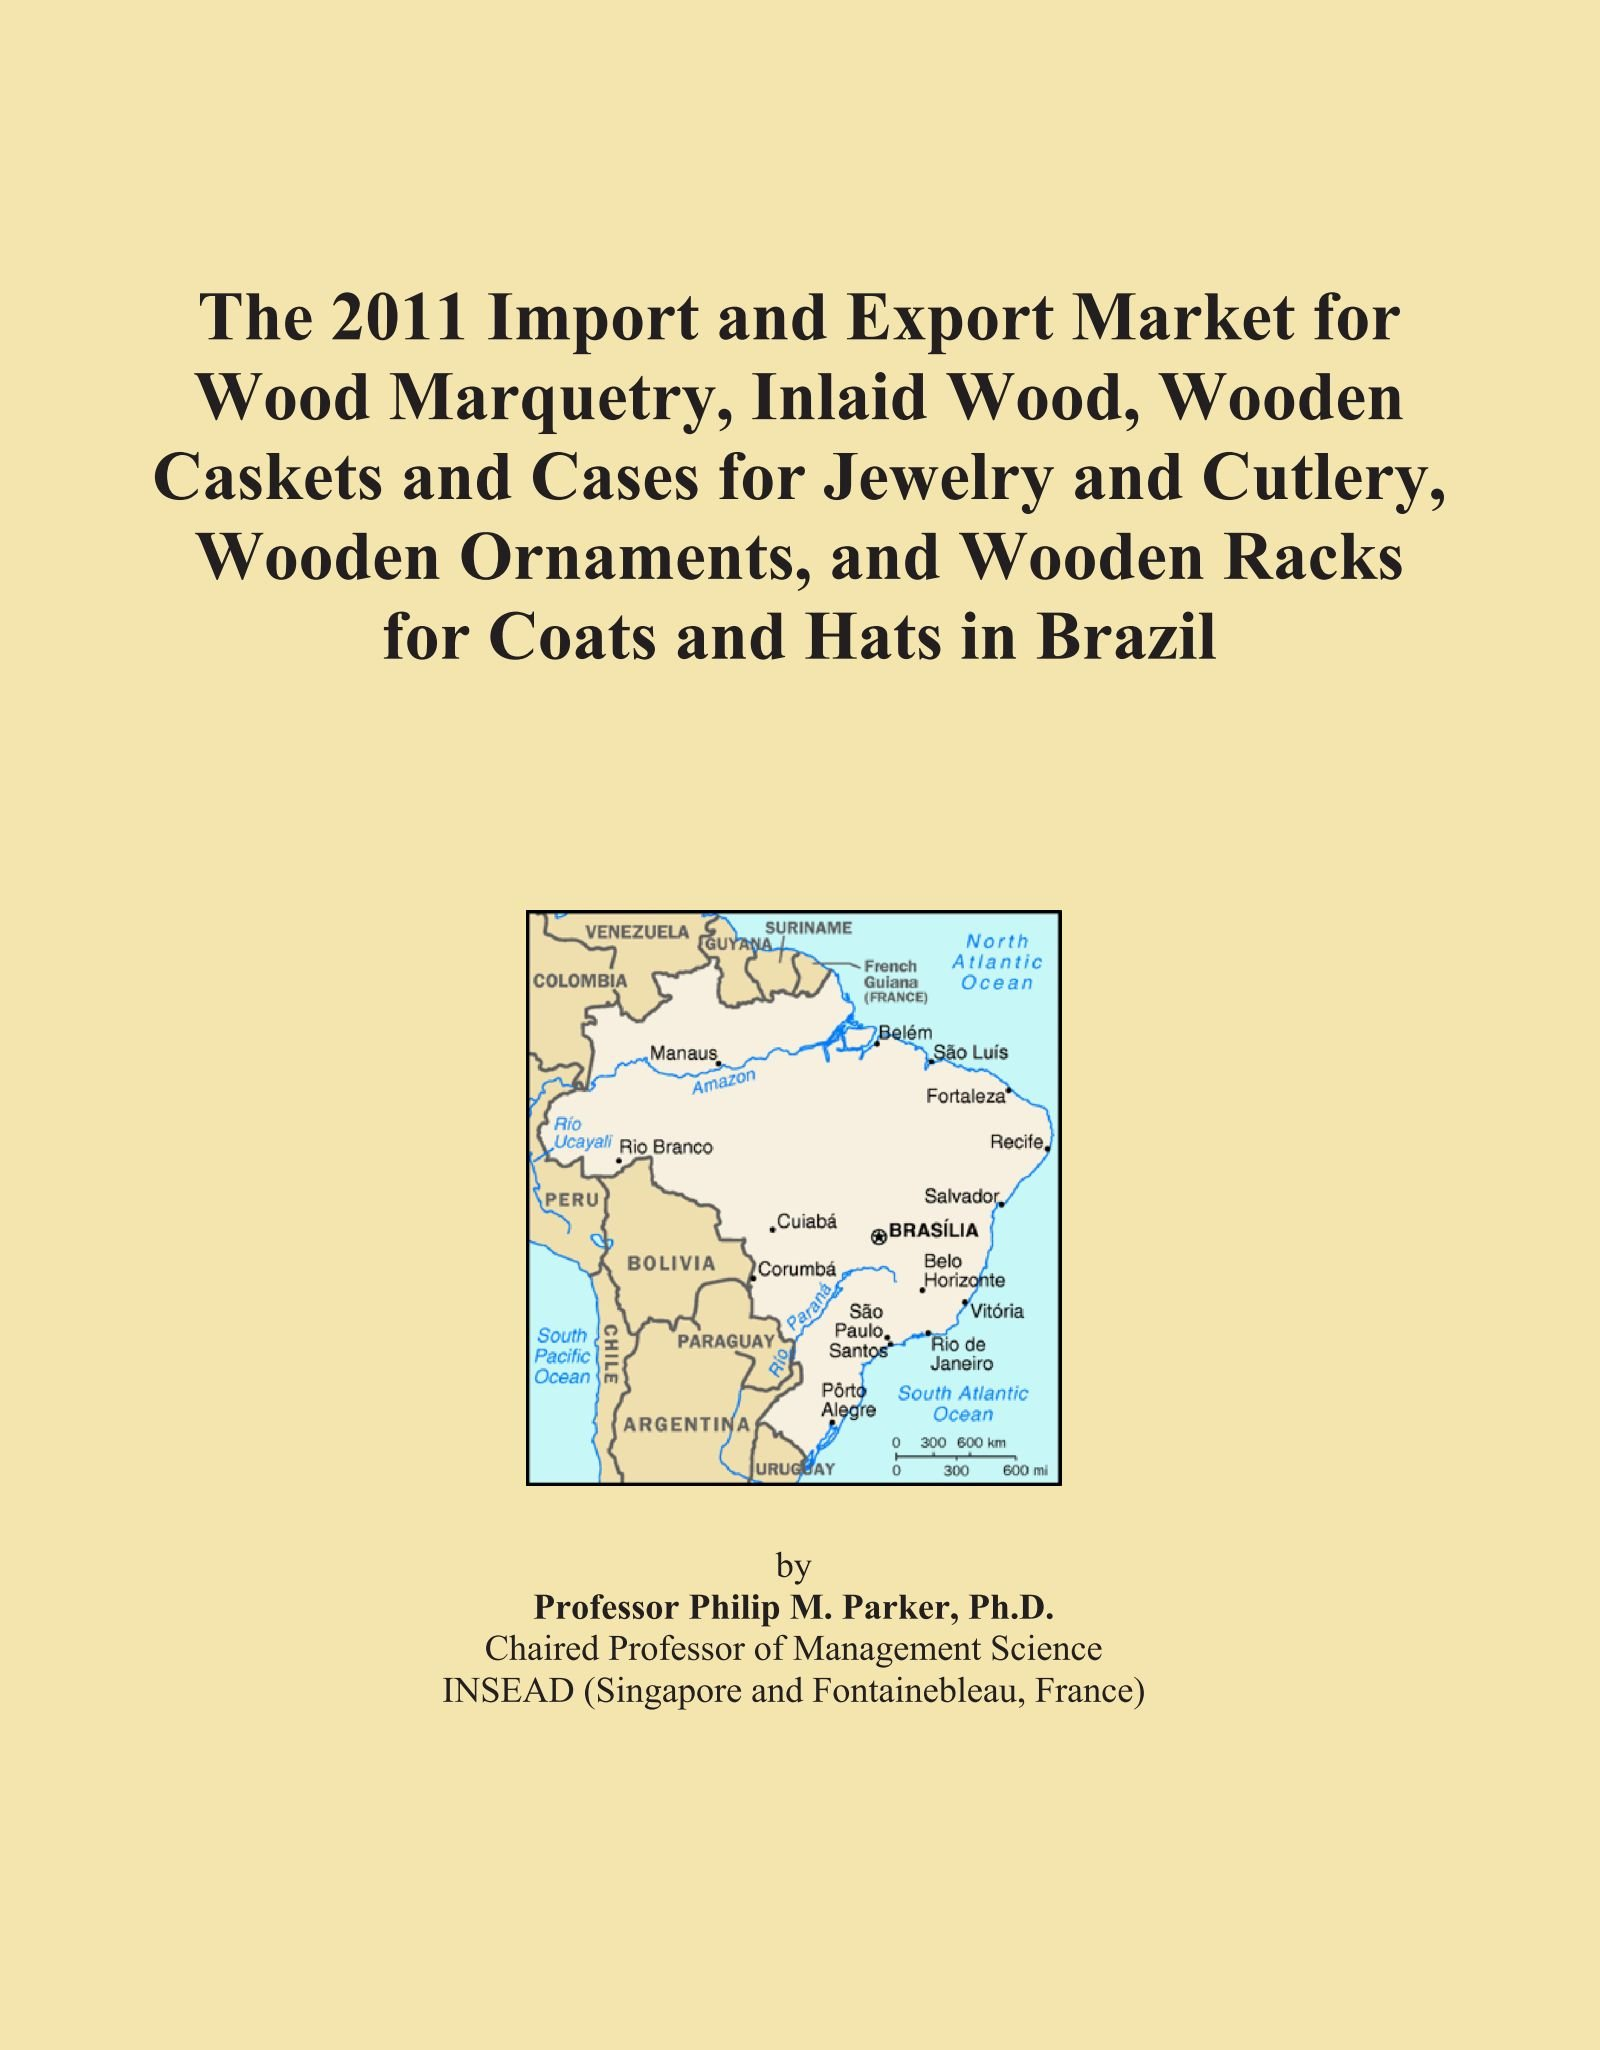 Download The 2011 Import and Export Market for Wood Marquetry, Inlaid Wood, Wooden Caskets and Cases for Jewelry and Cutlery, Wooden Ornaments, and Wooden Racks for Coats and Hats in Brazil pdf epub